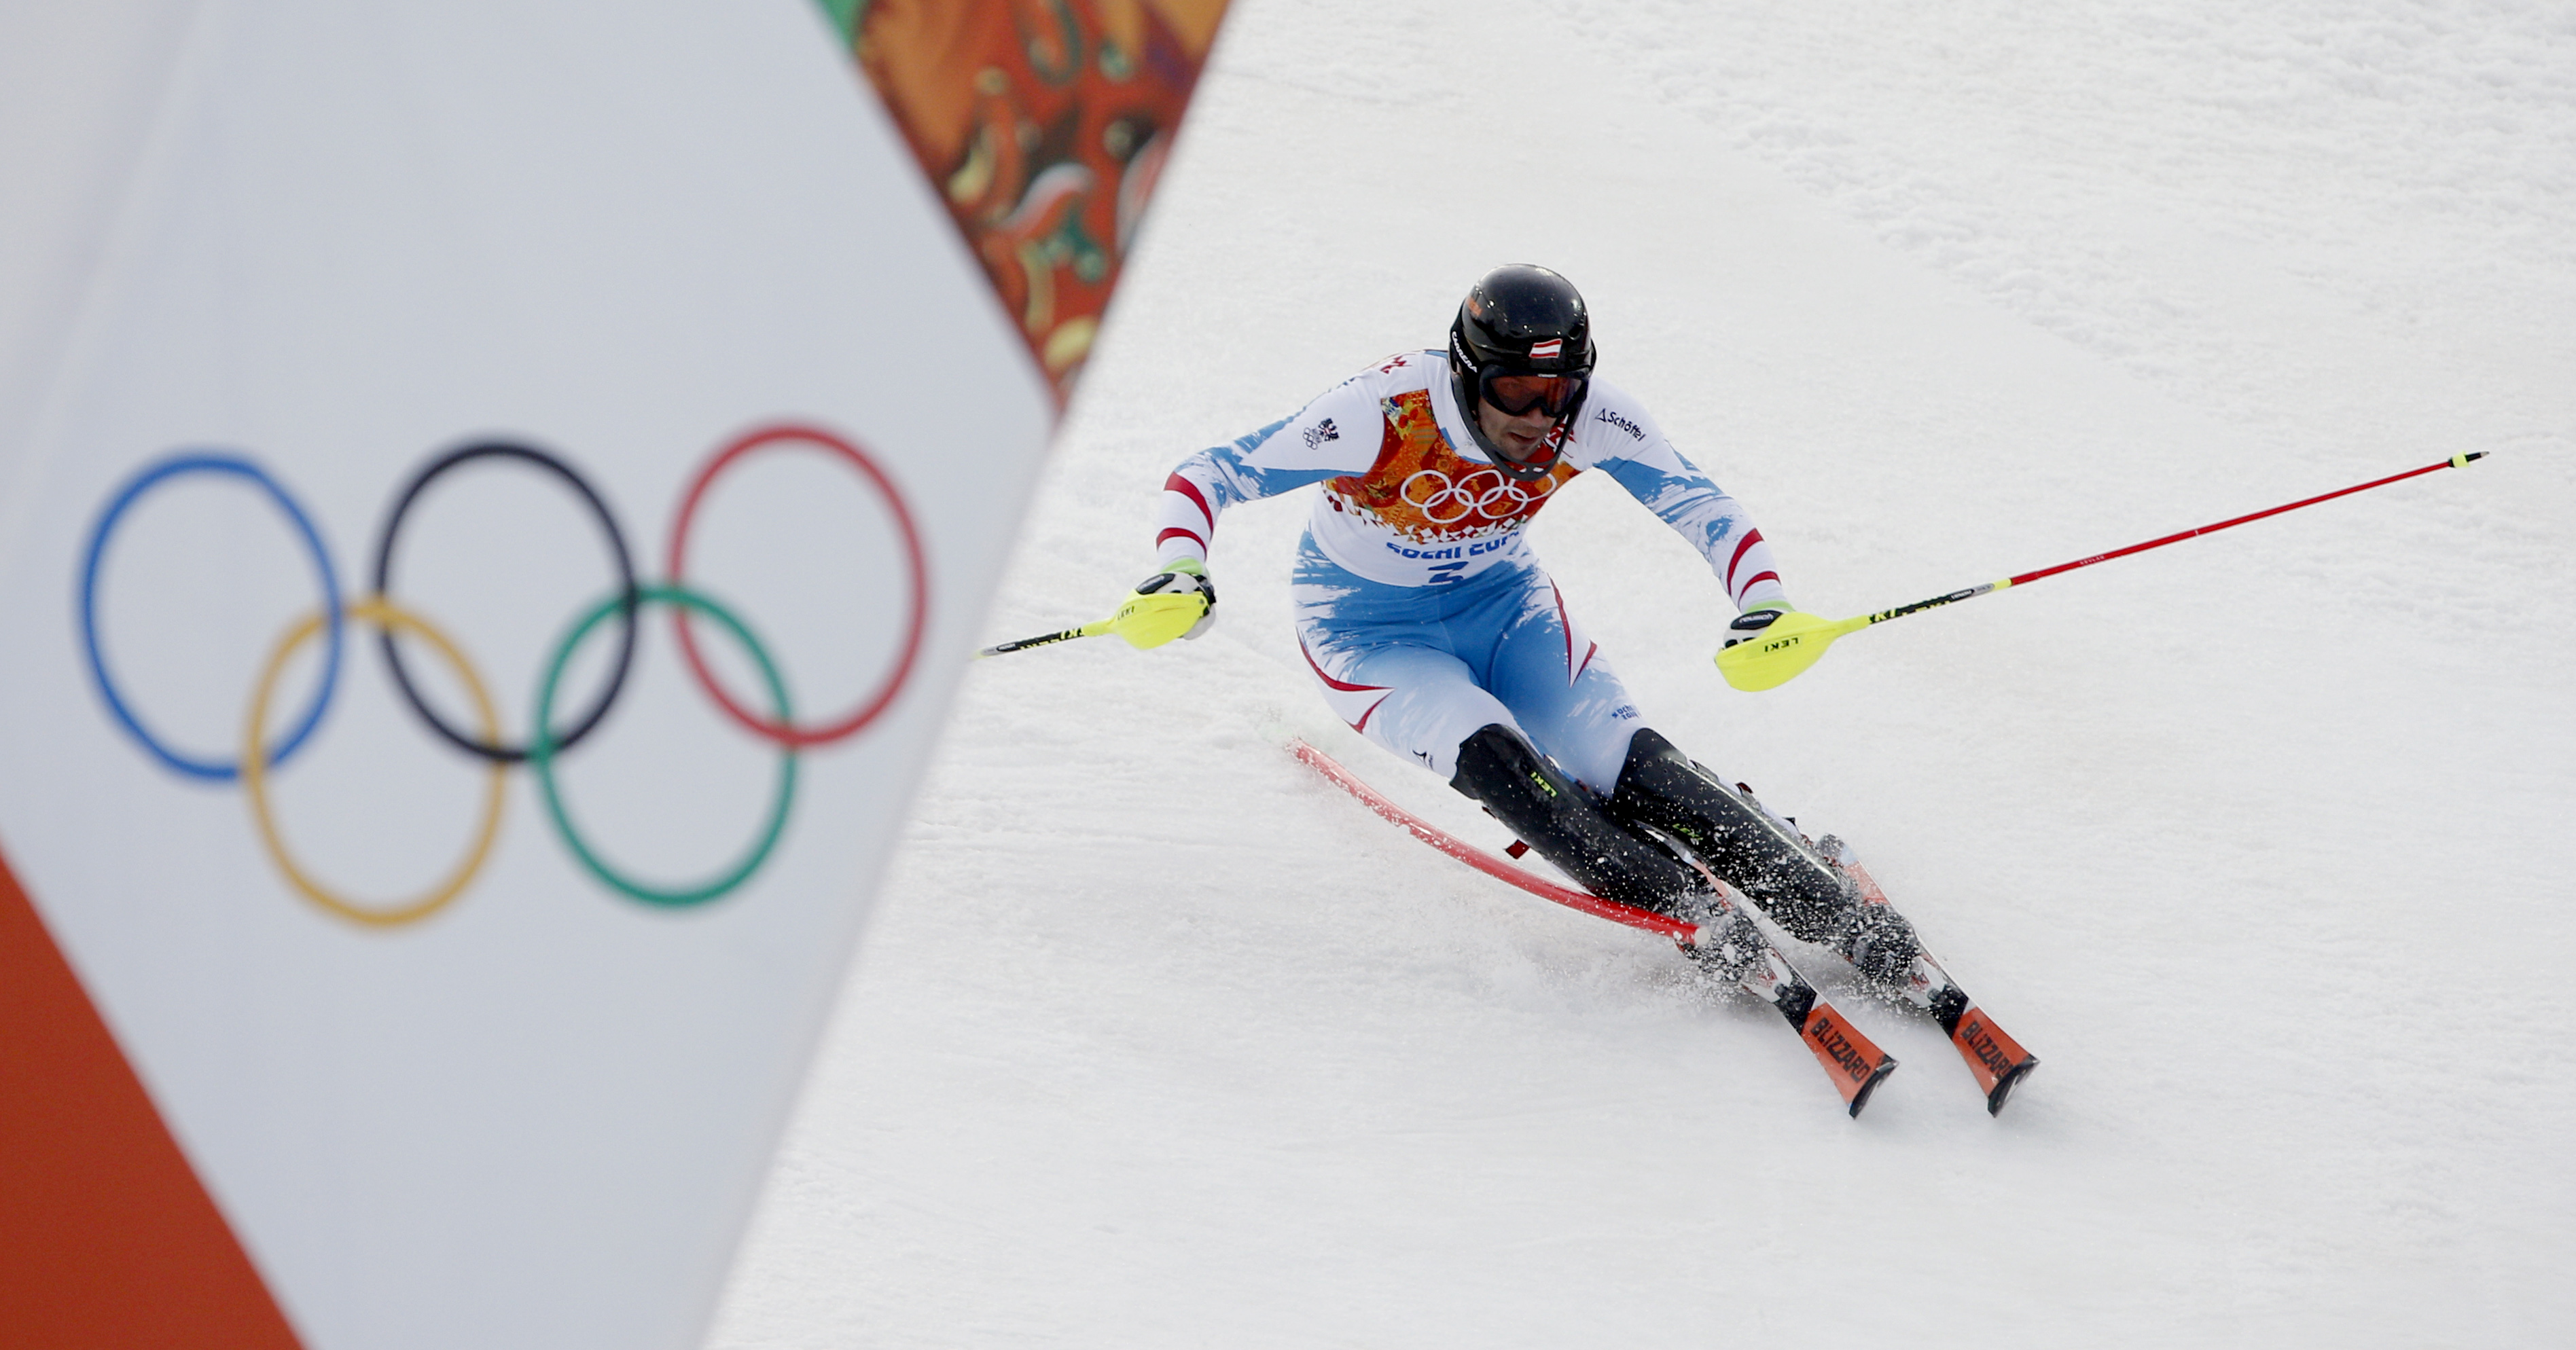 Austria's Mario Matt nears the finish in the men's slalom at the Sochi 2014 Winter Olympics, Saturday, Feb. 22, 2014, in Krasnaya Polyana, Russia. (AP Photo/Christophe Ena)